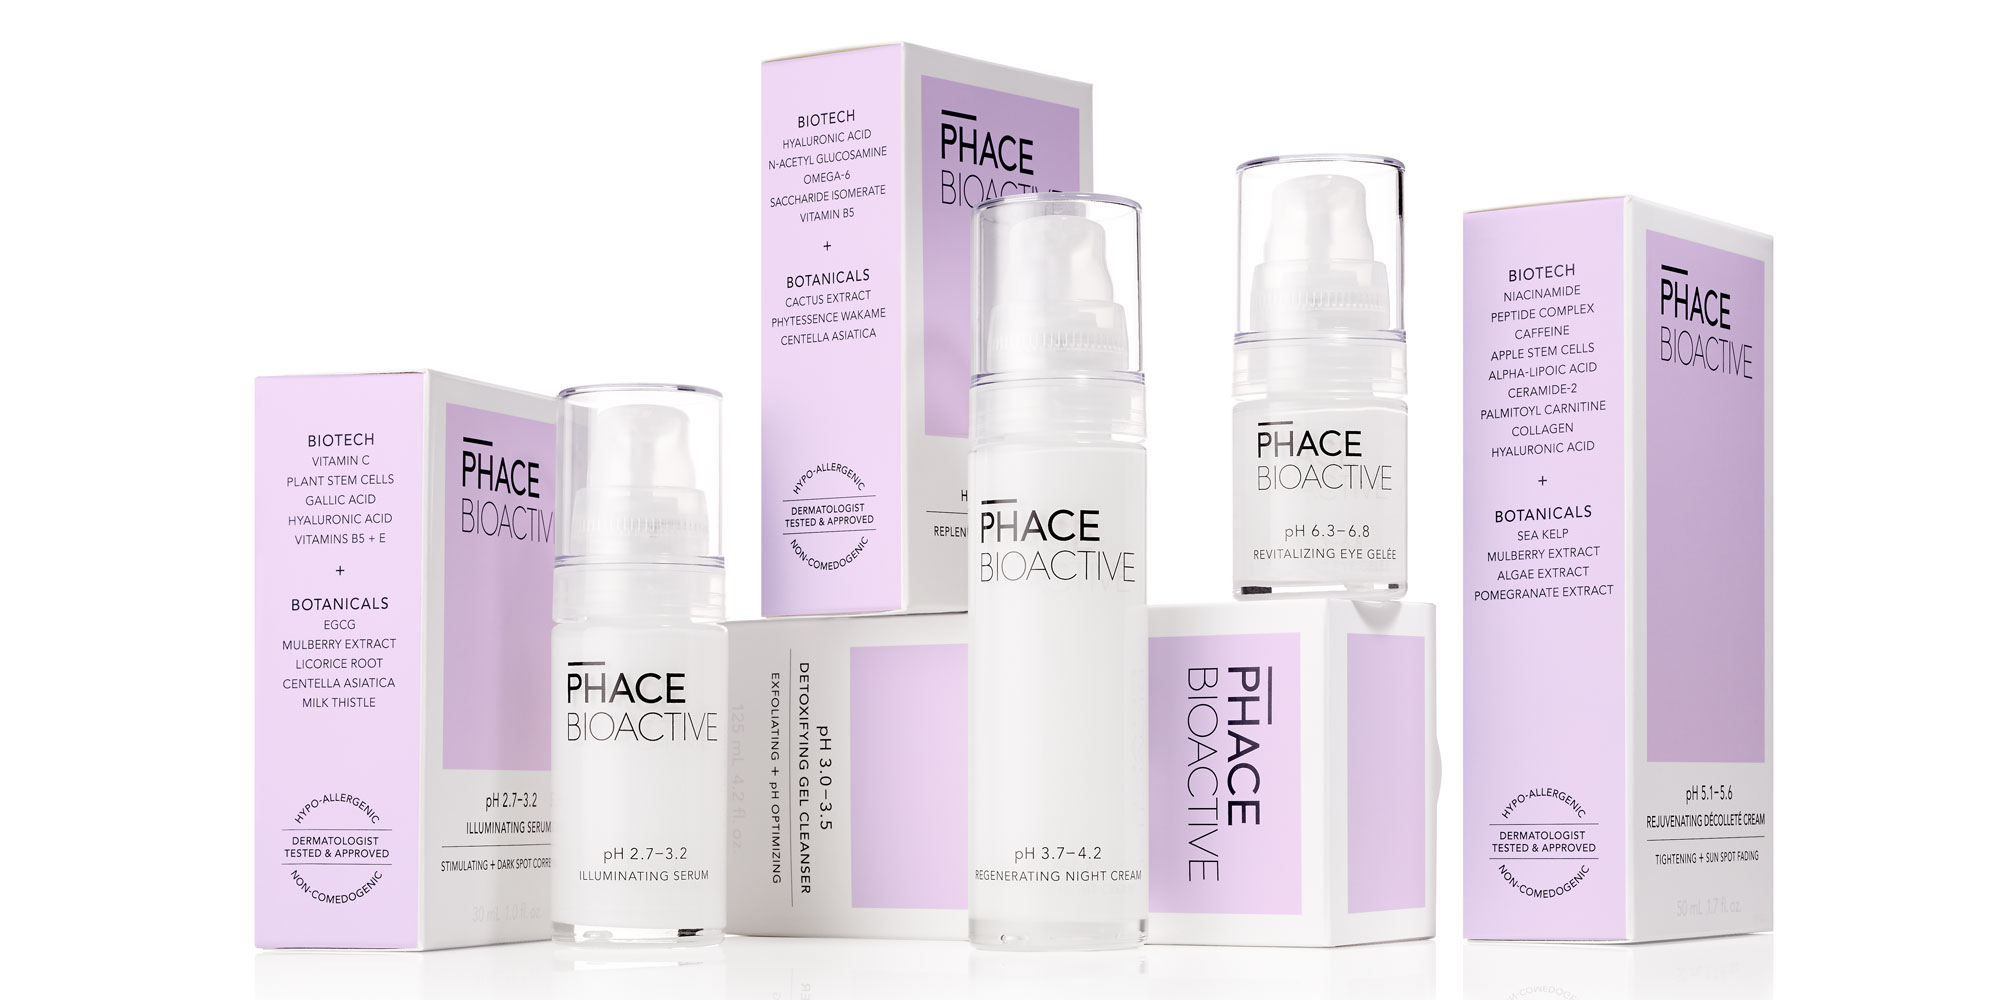 Phace Bioactive Primary Secondary Lineup